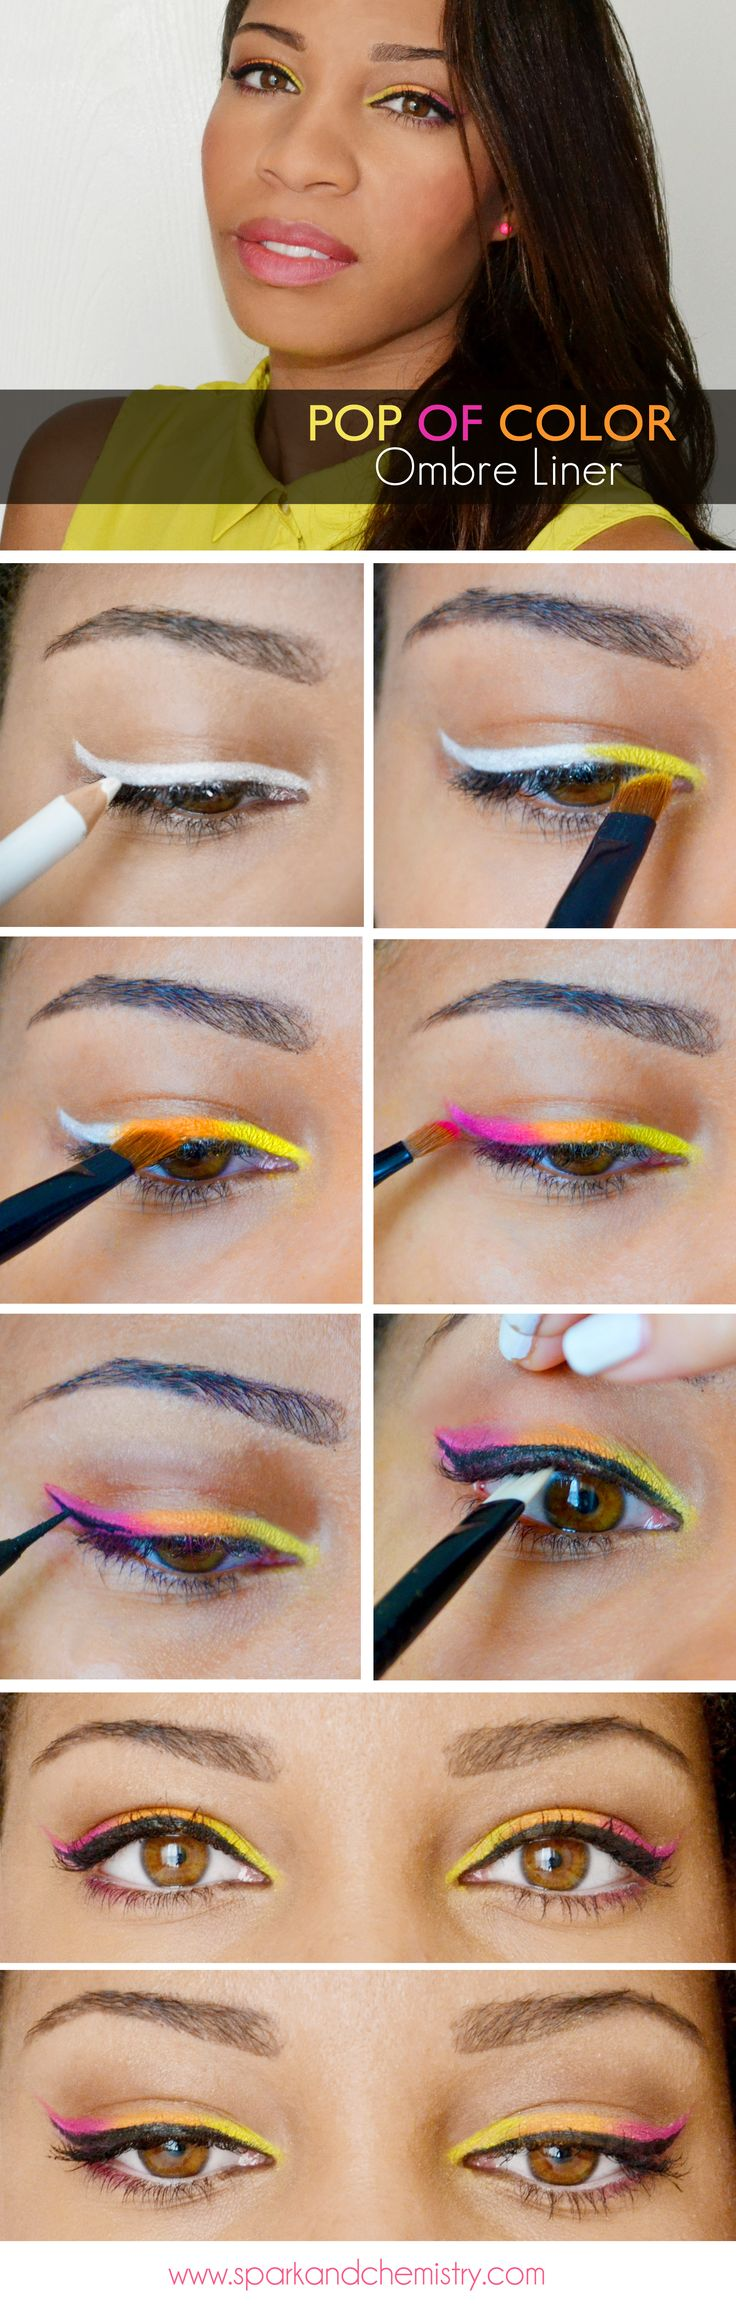 best images about Makeup on Pinterest  Bobs Eyes and Midnight